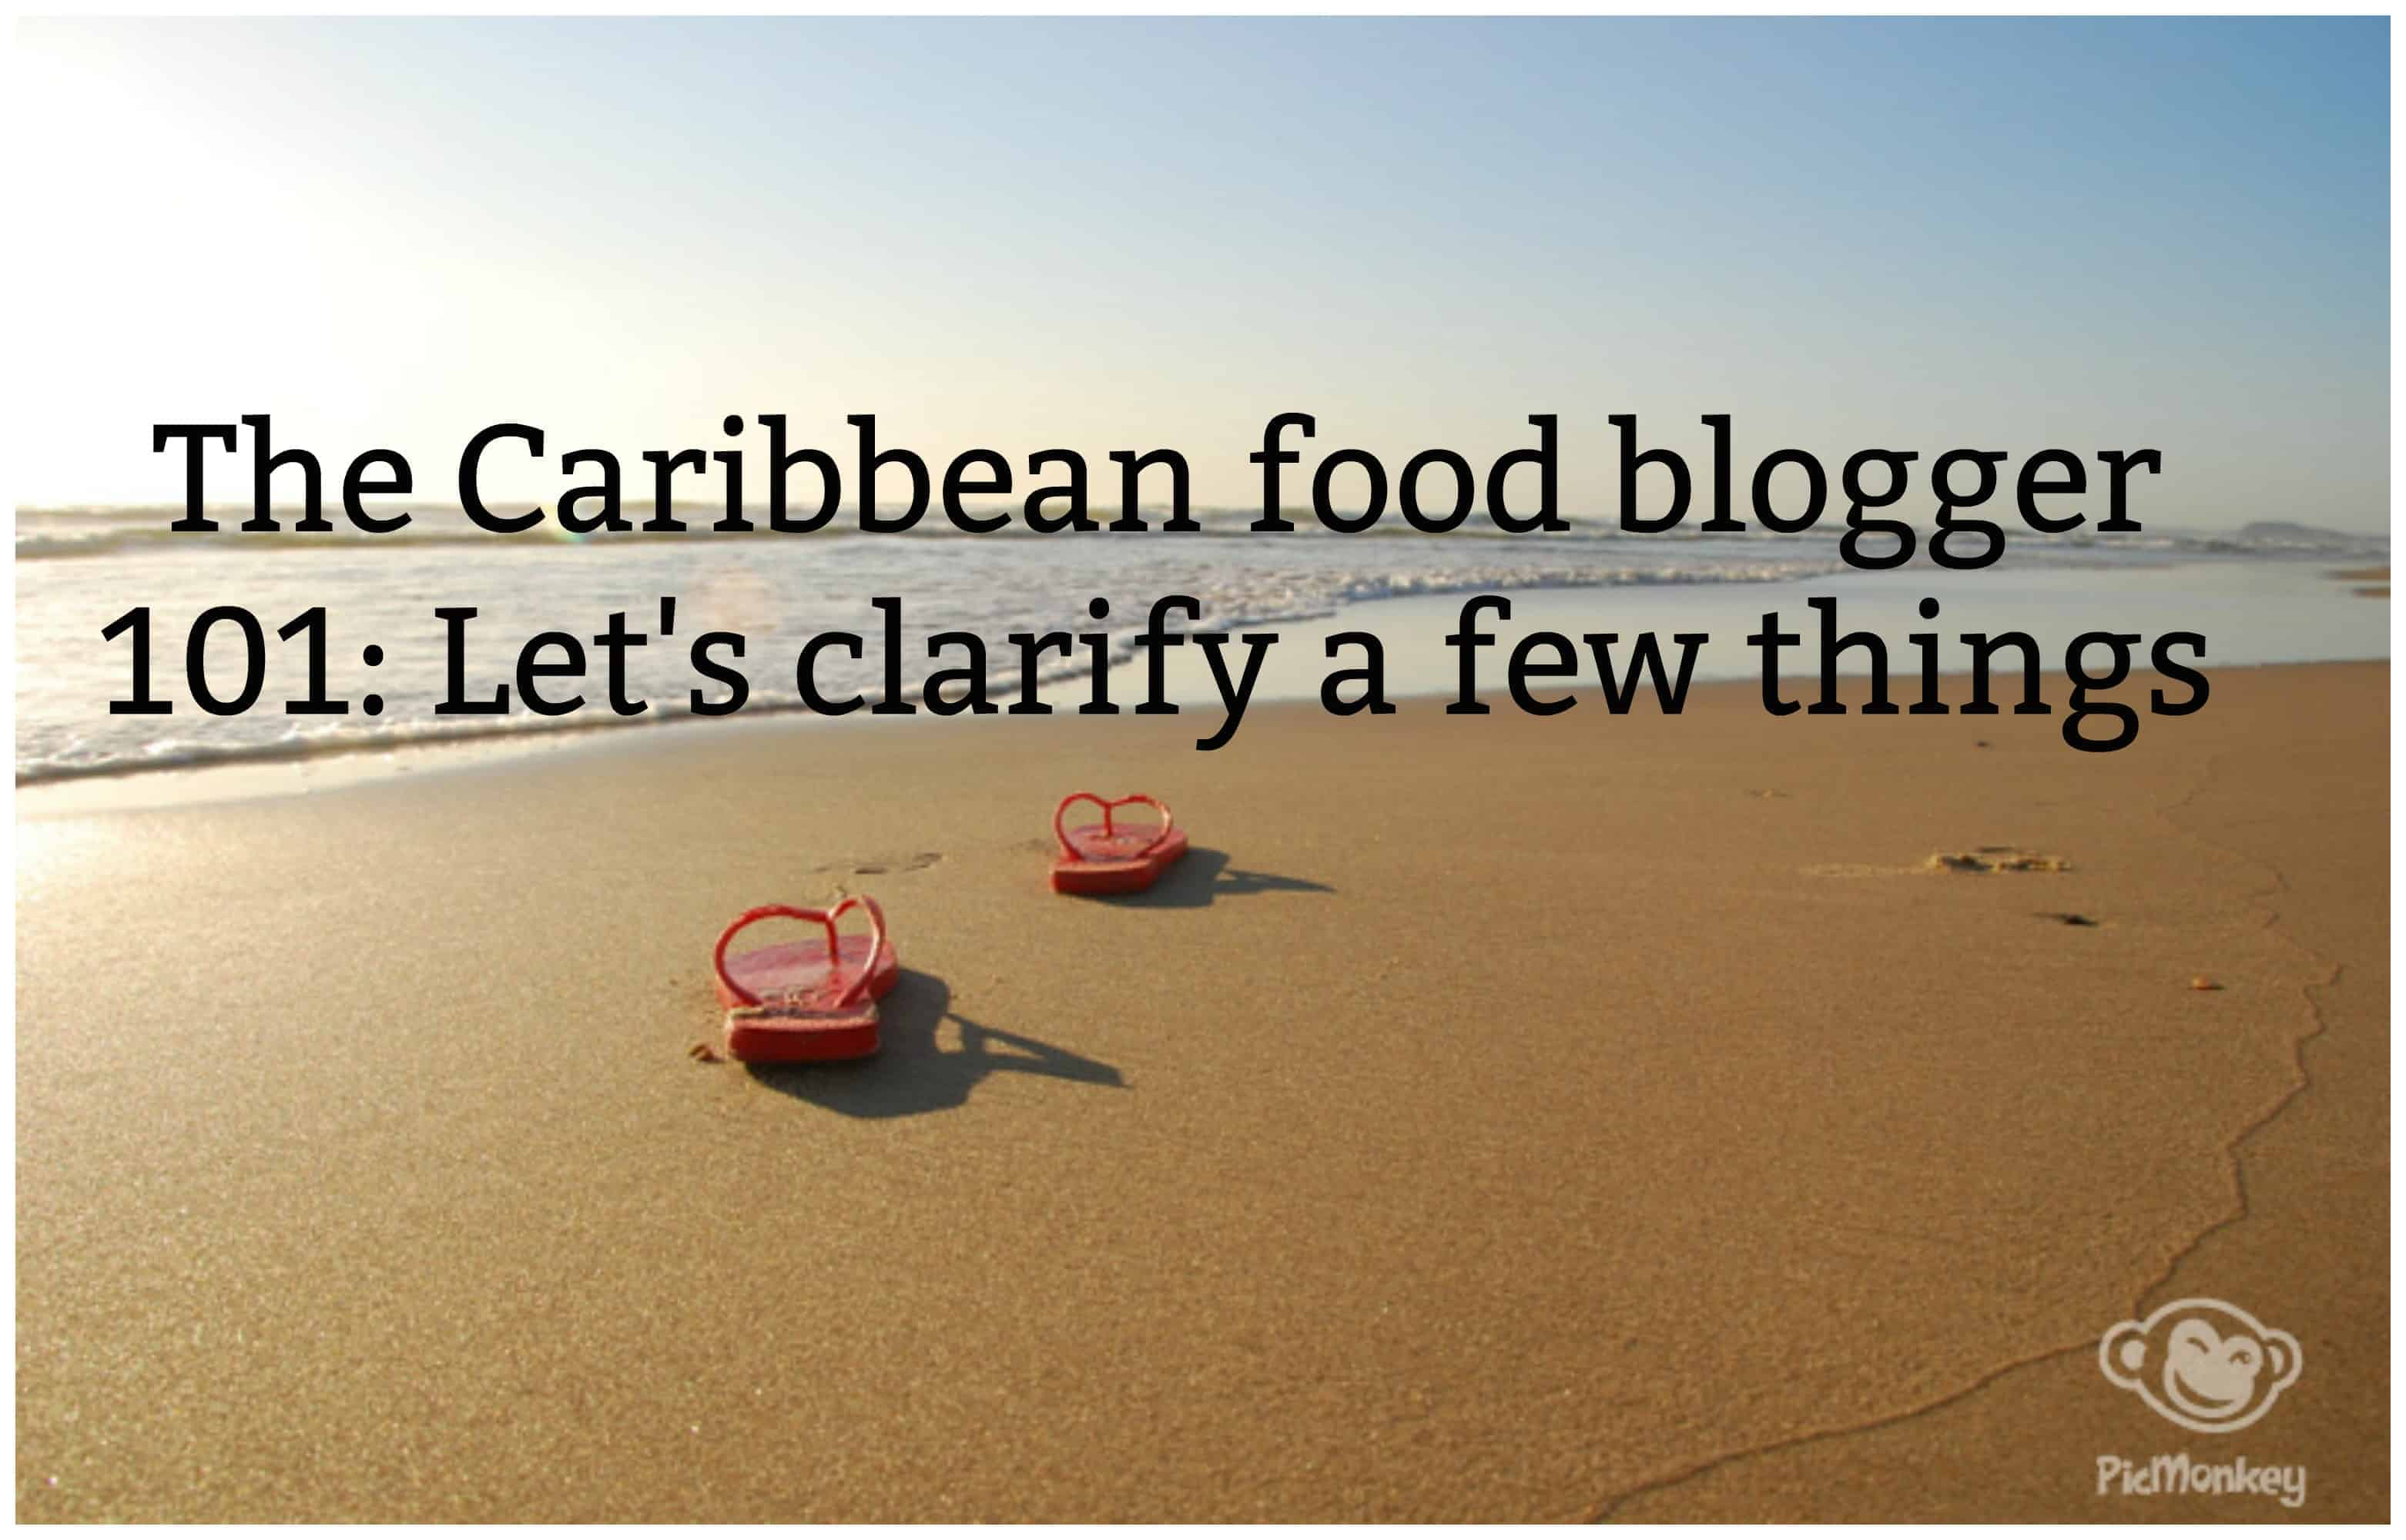 Caribbean food blogger 101